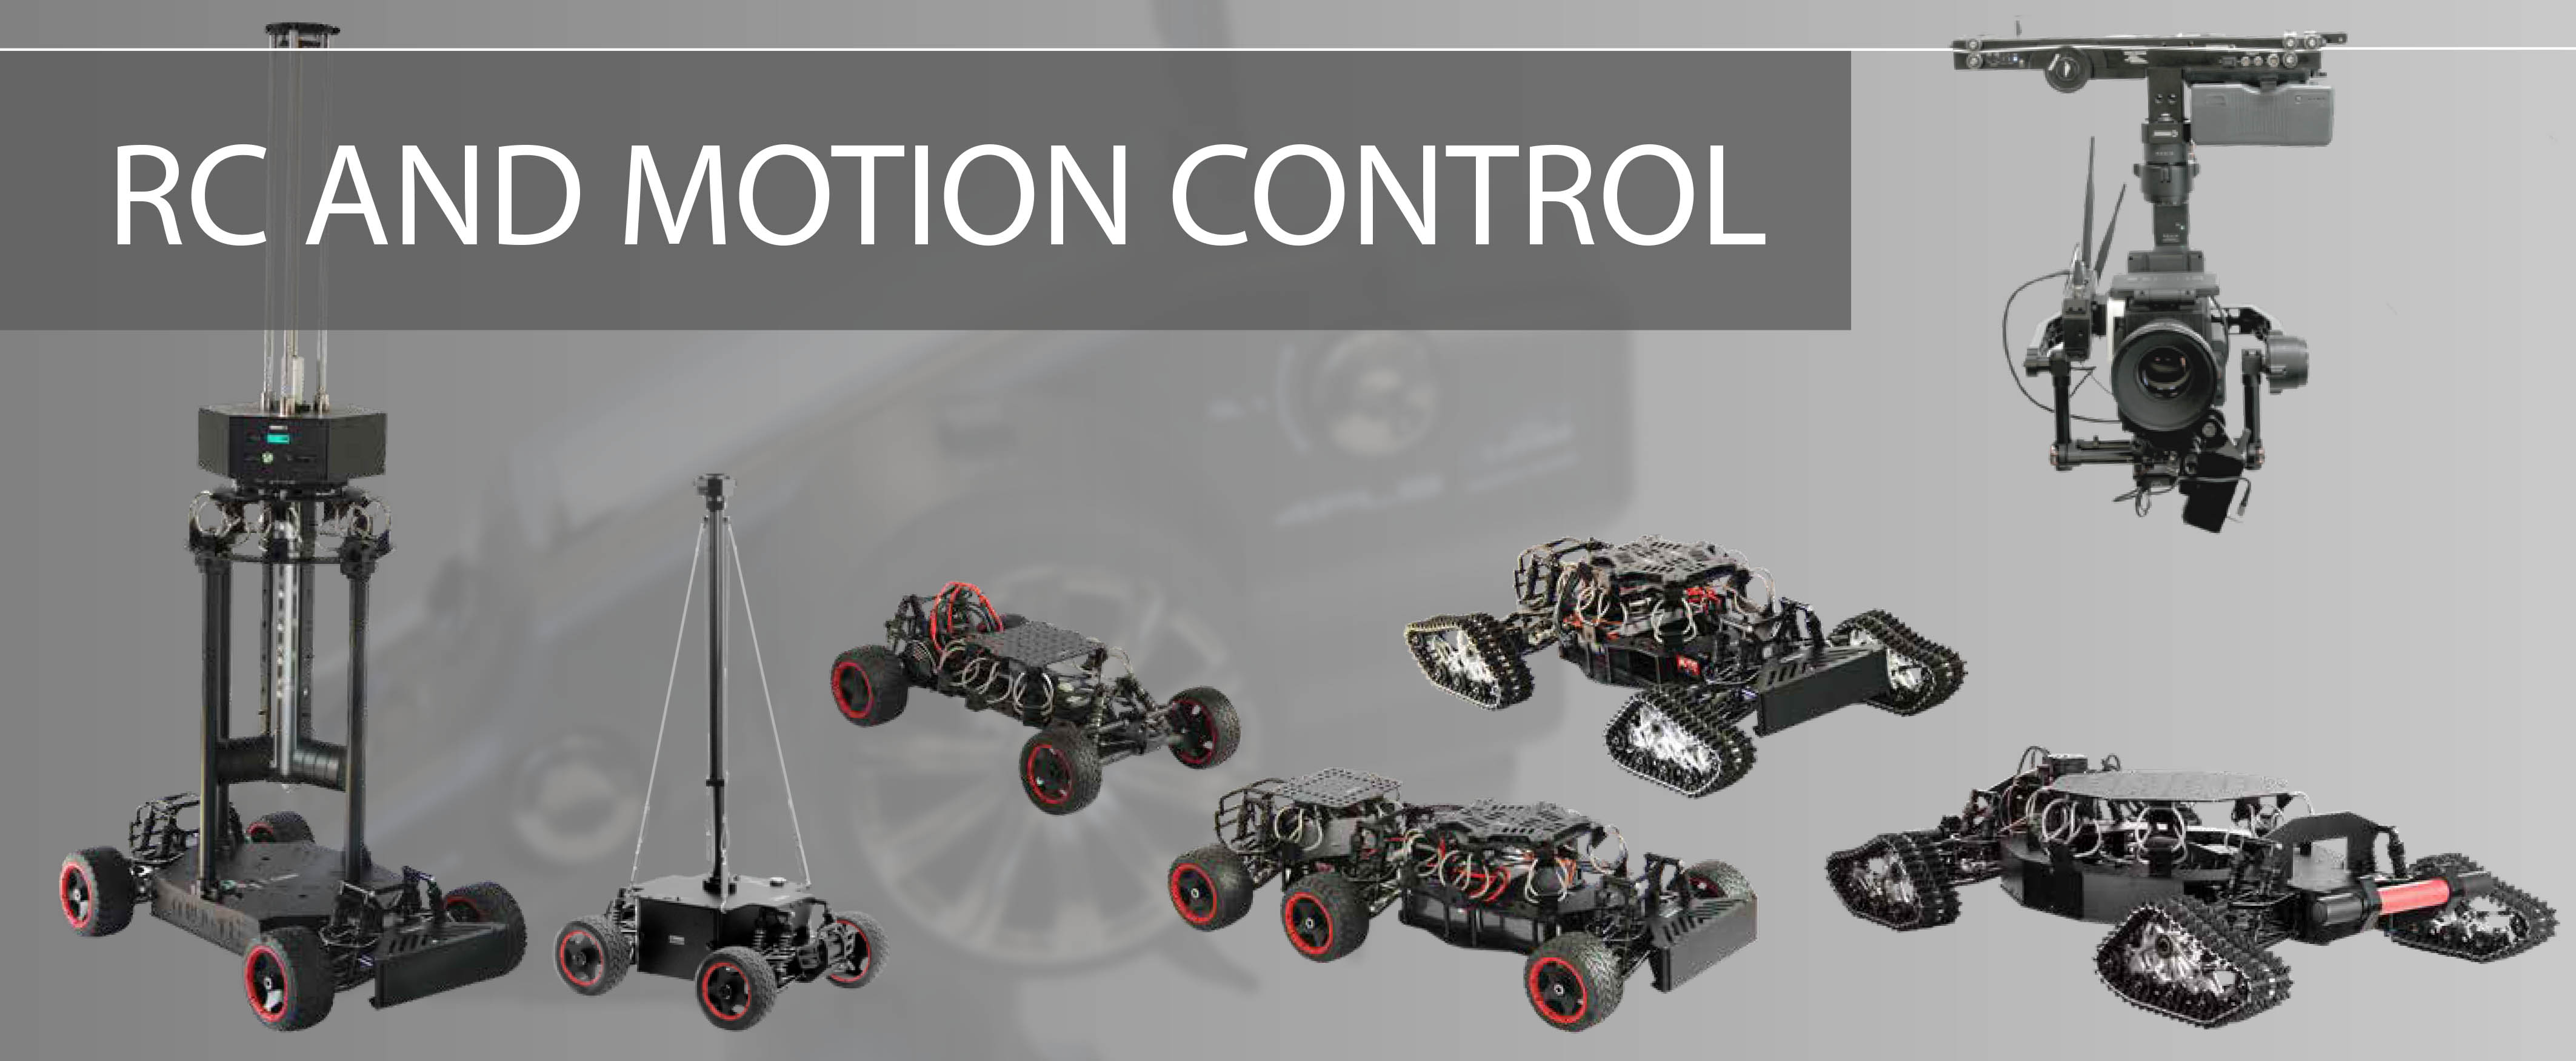 https://cinegears.com/galleries/motion-control/